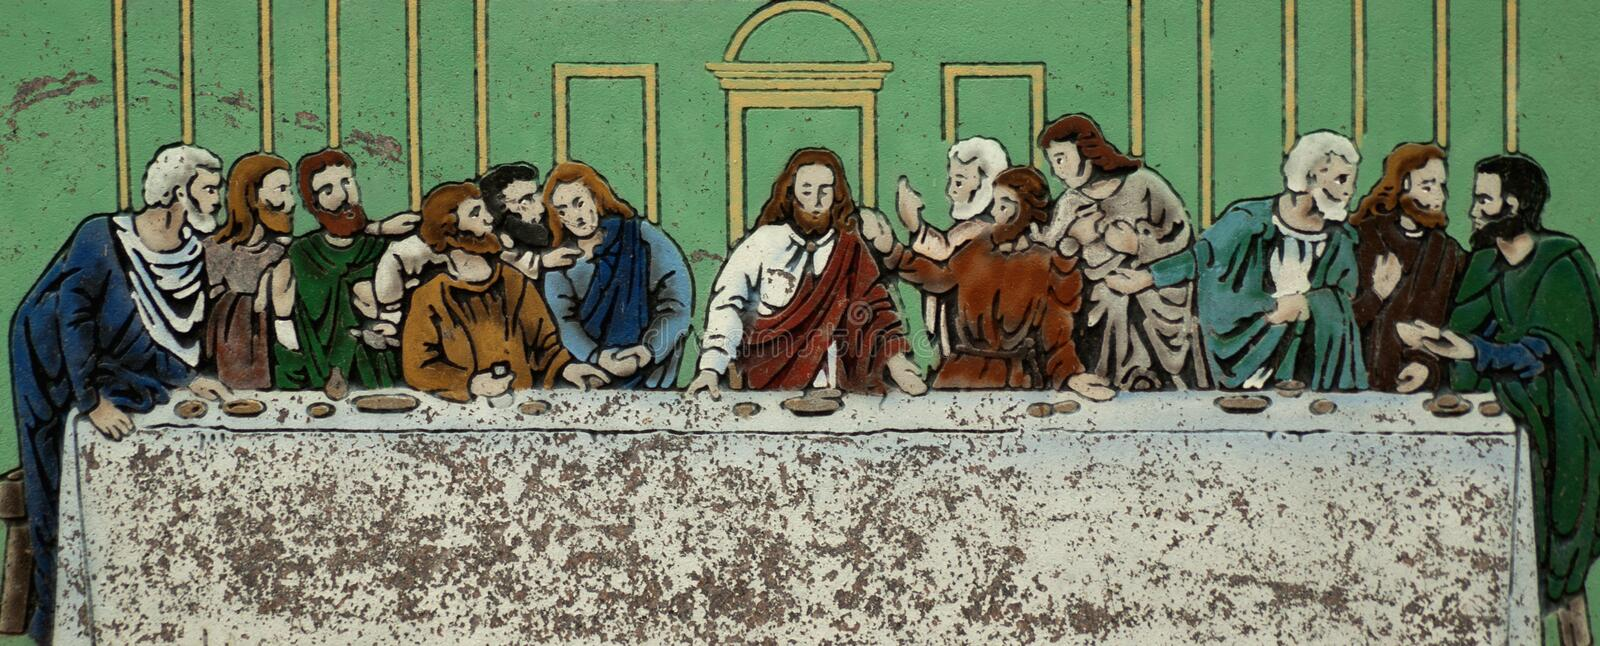 The last supper. Time and weather worn depiction of the last supper stock photos